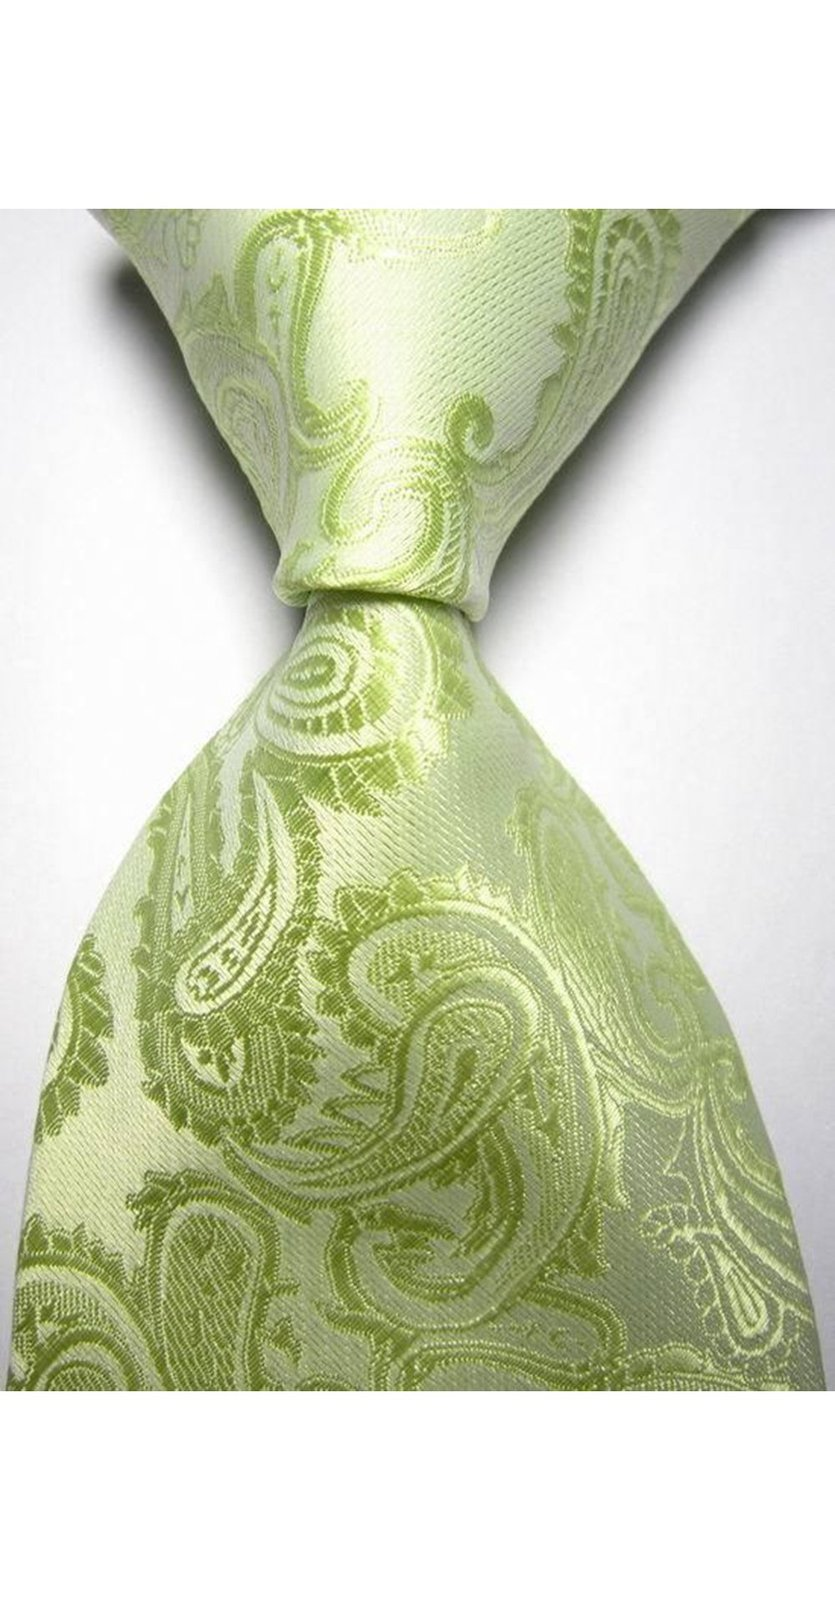 Primary image for Eeleva New Paisley Jacquard Woven Men's Tie Necktie (Green)